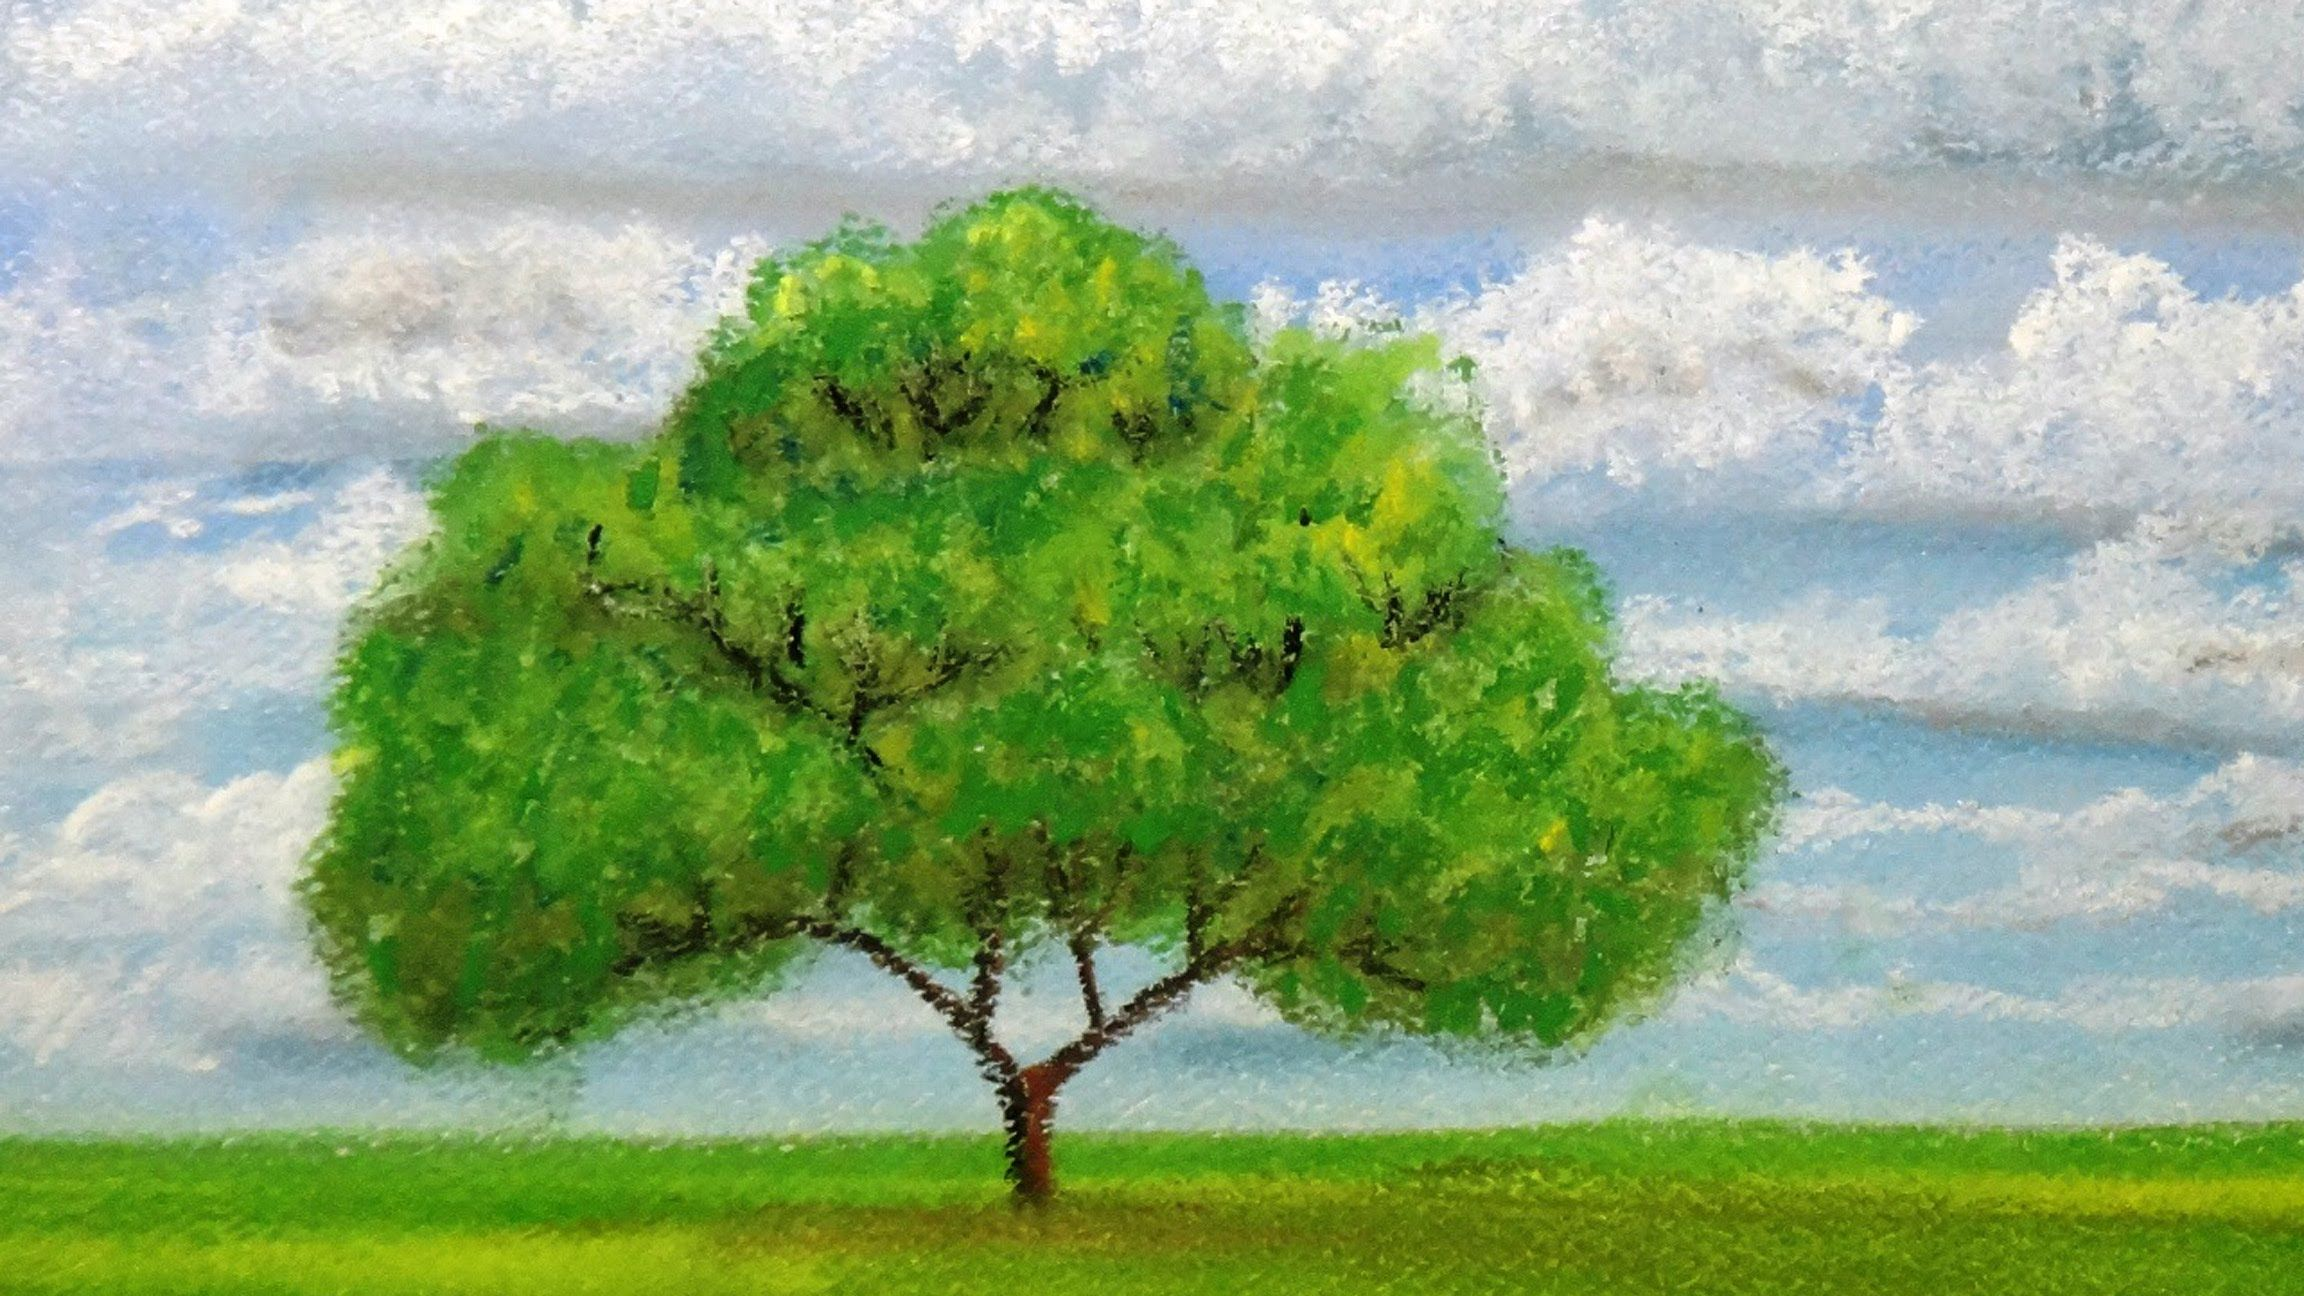 How to draw a tree at distance with pastels | pastel | Pinterest ...